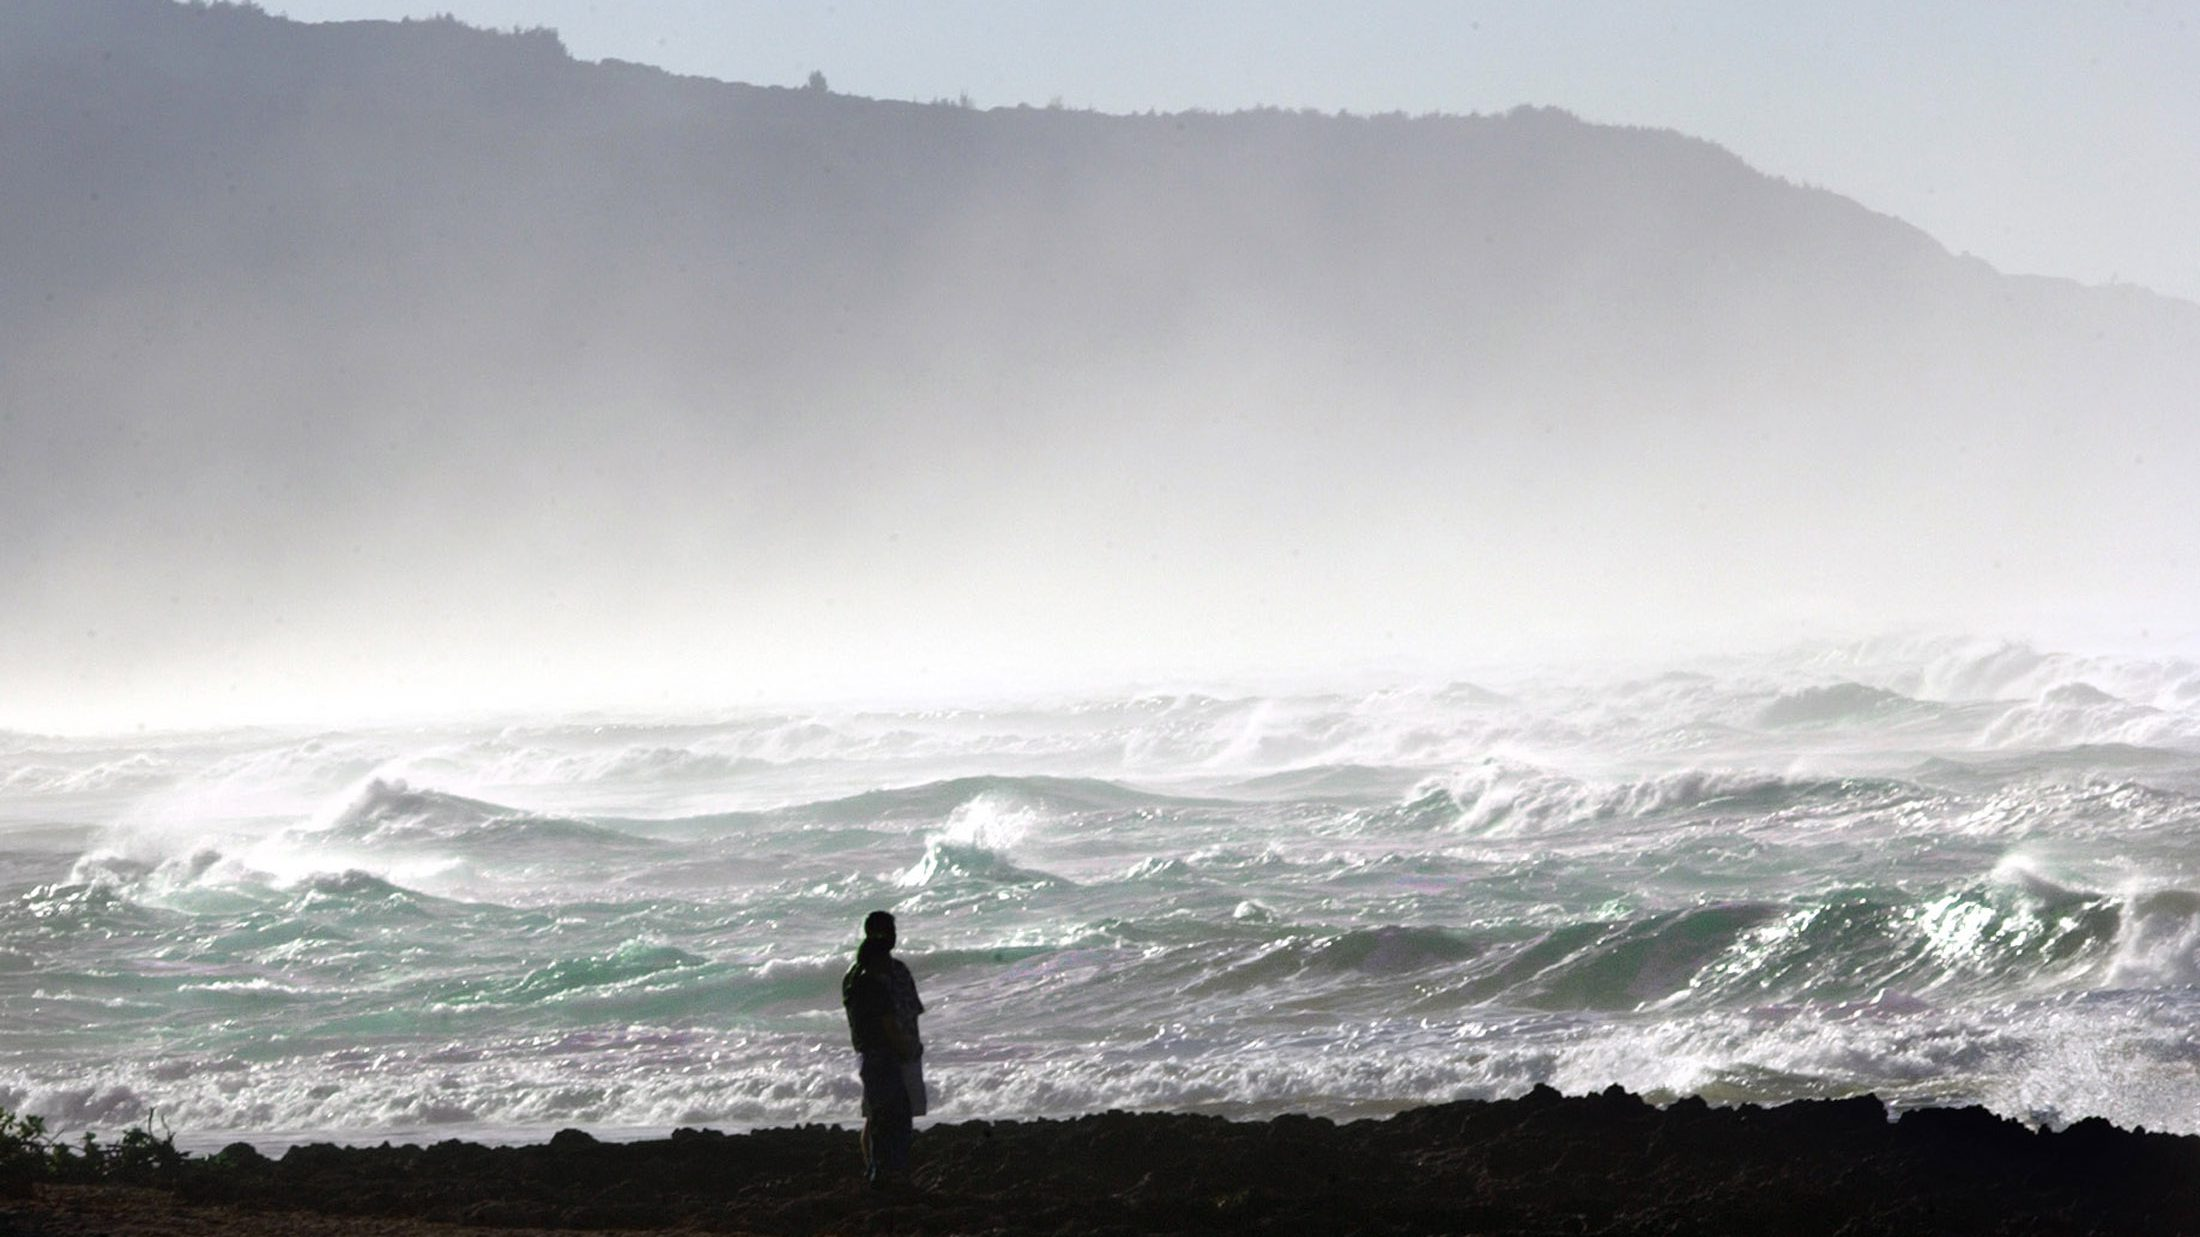 WILD WAVES CLOSED OAHU'S NORTH SHORE BEACHES.